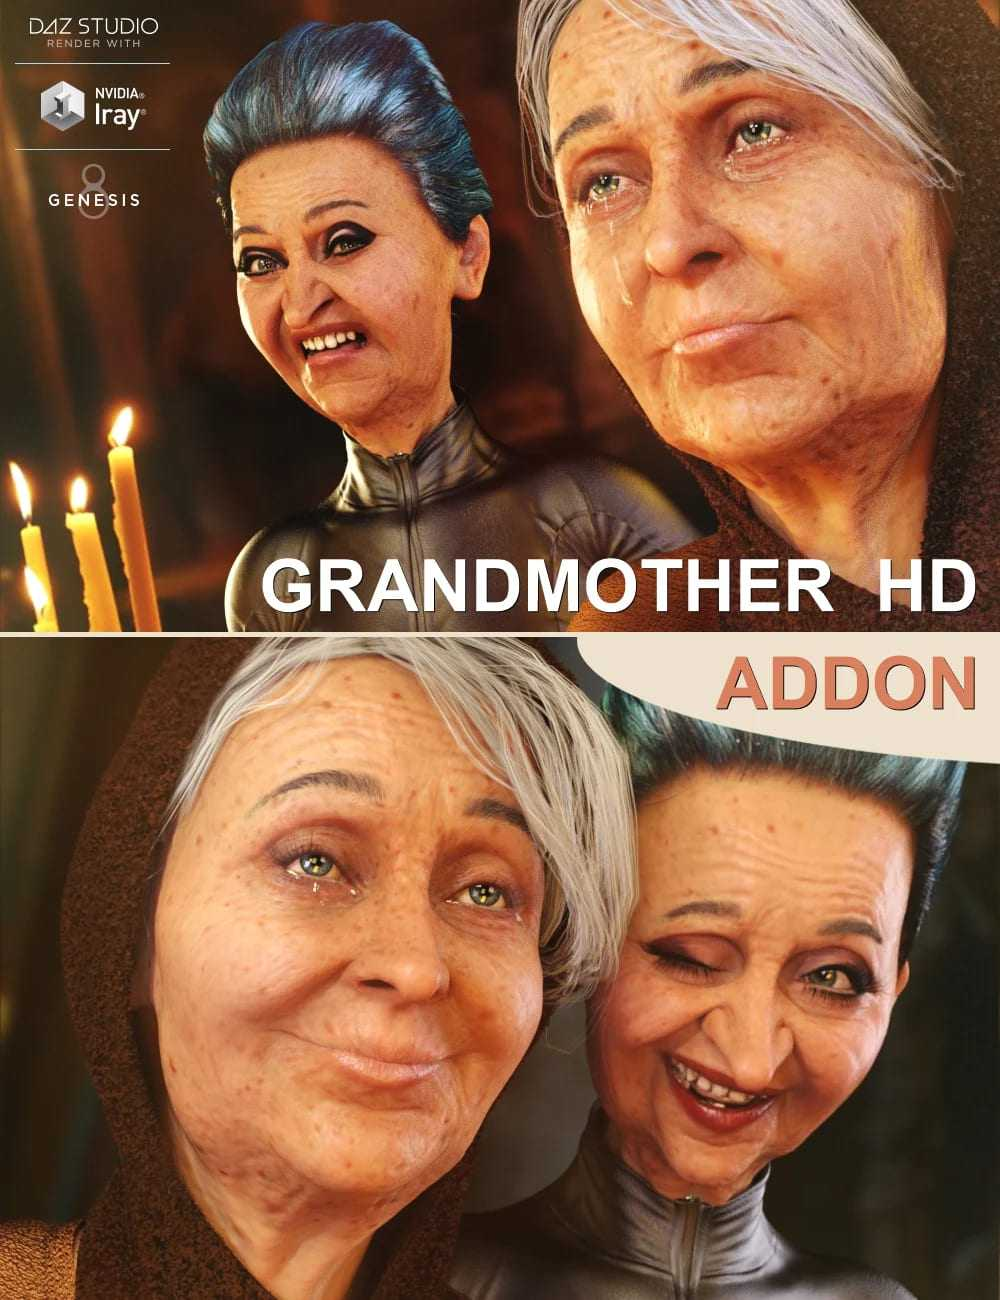 Grandmother HD Addon